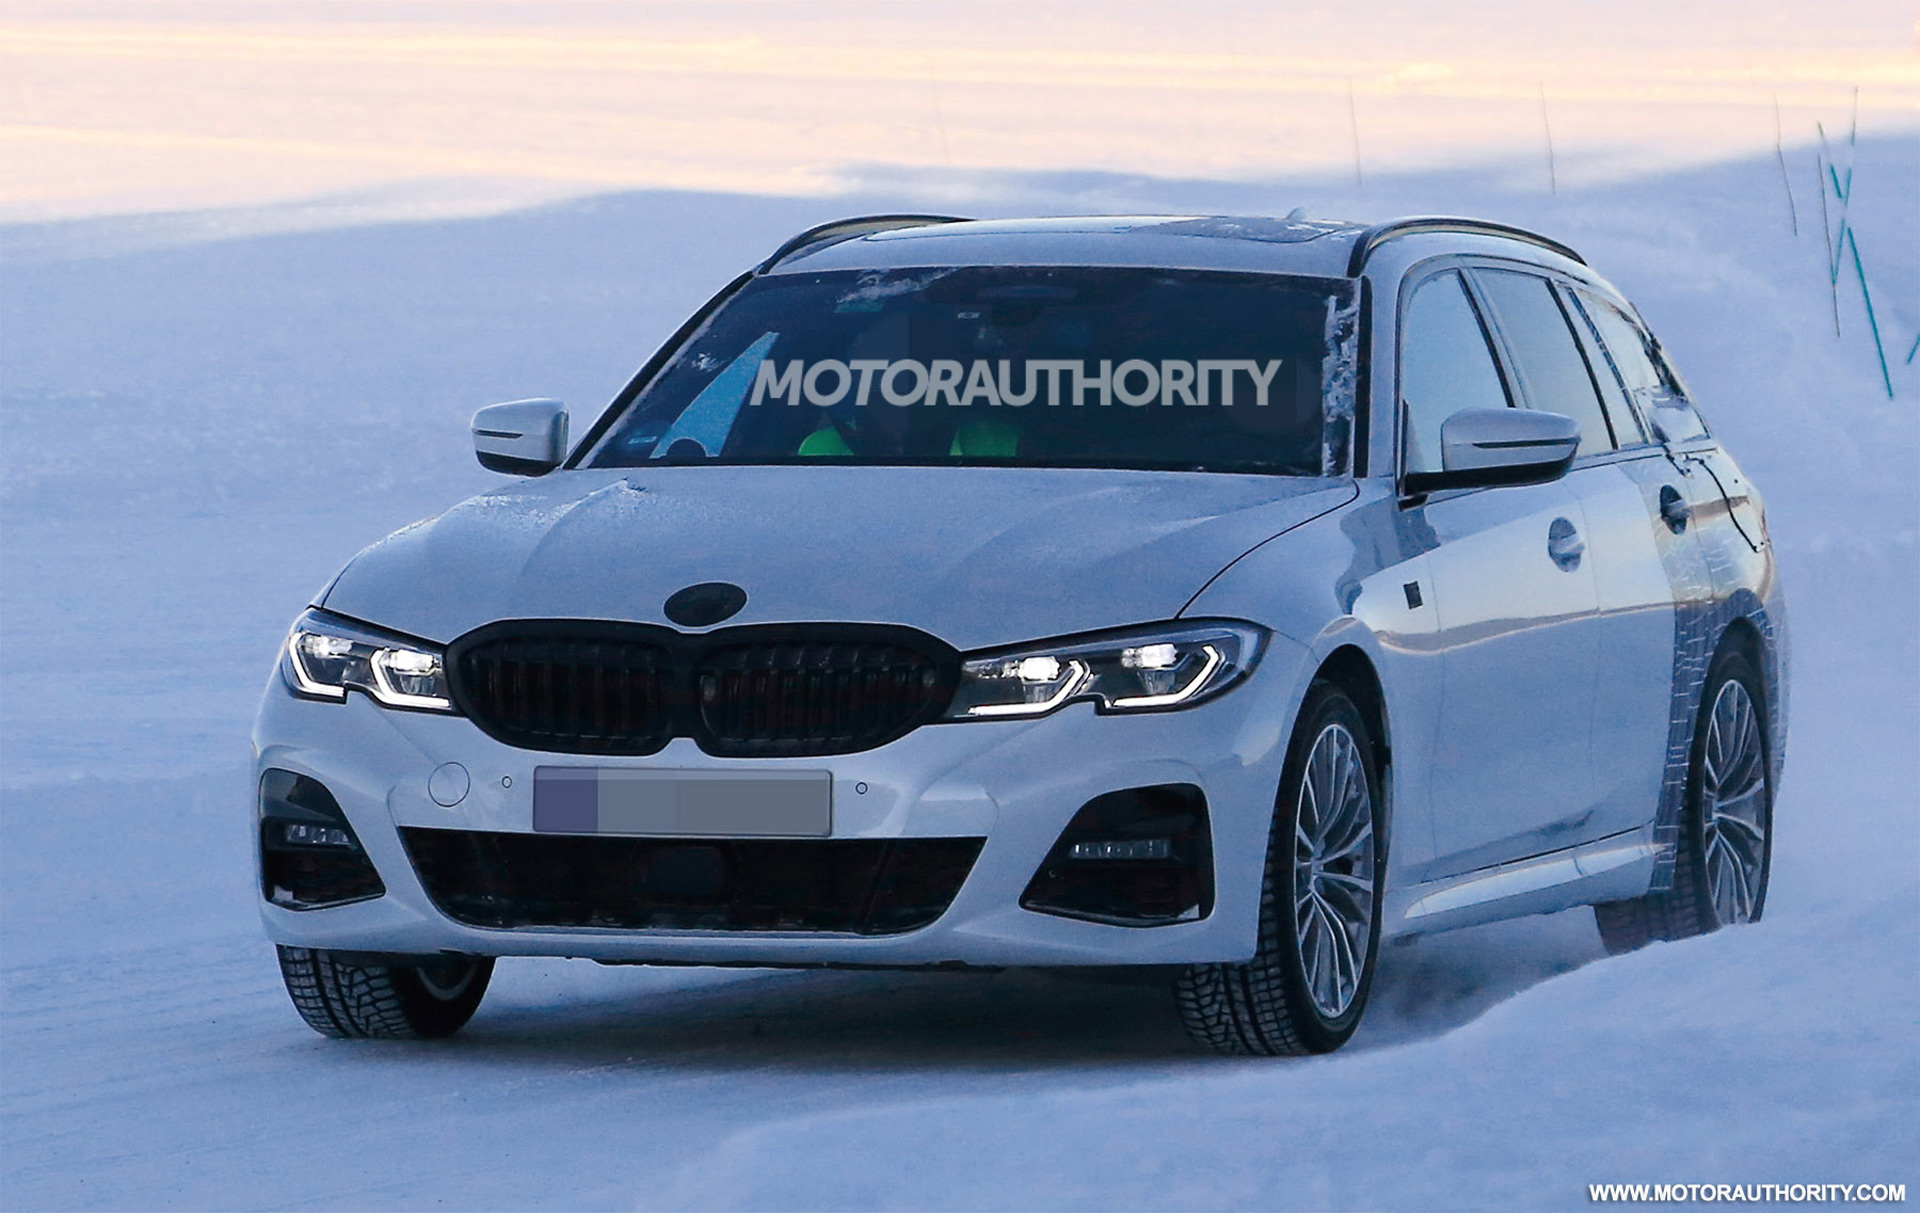 2020 Spy Shots BMW 3 Series Reviews